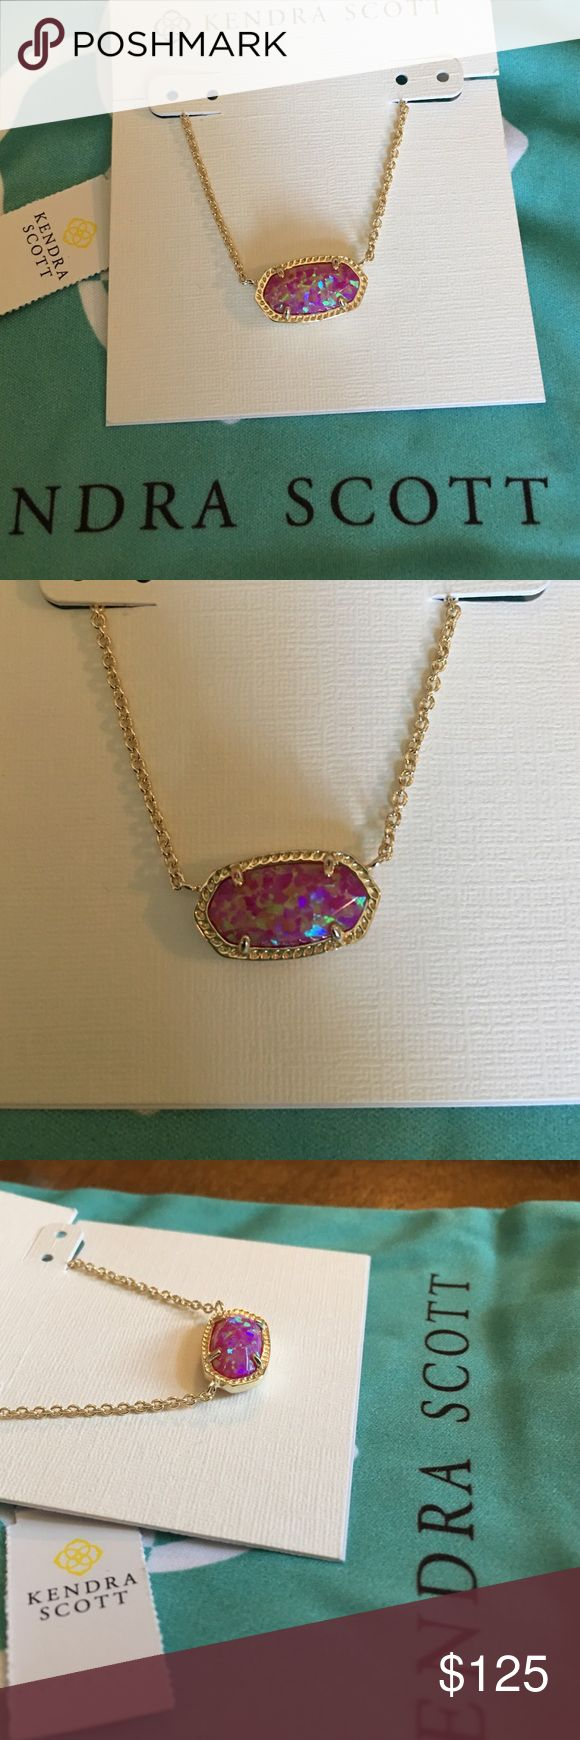 Kendra Scott Opal Elisa NWT Kendra Scott fuchsia Kyocera opal set in gold. BEAUTIFUL necklace! Very hard to find, no longer sold in stores. Comes with care card and dust bag. Will ship safely and next day!           || open to REASONABLE offers only || Kendra Scott Jewelry